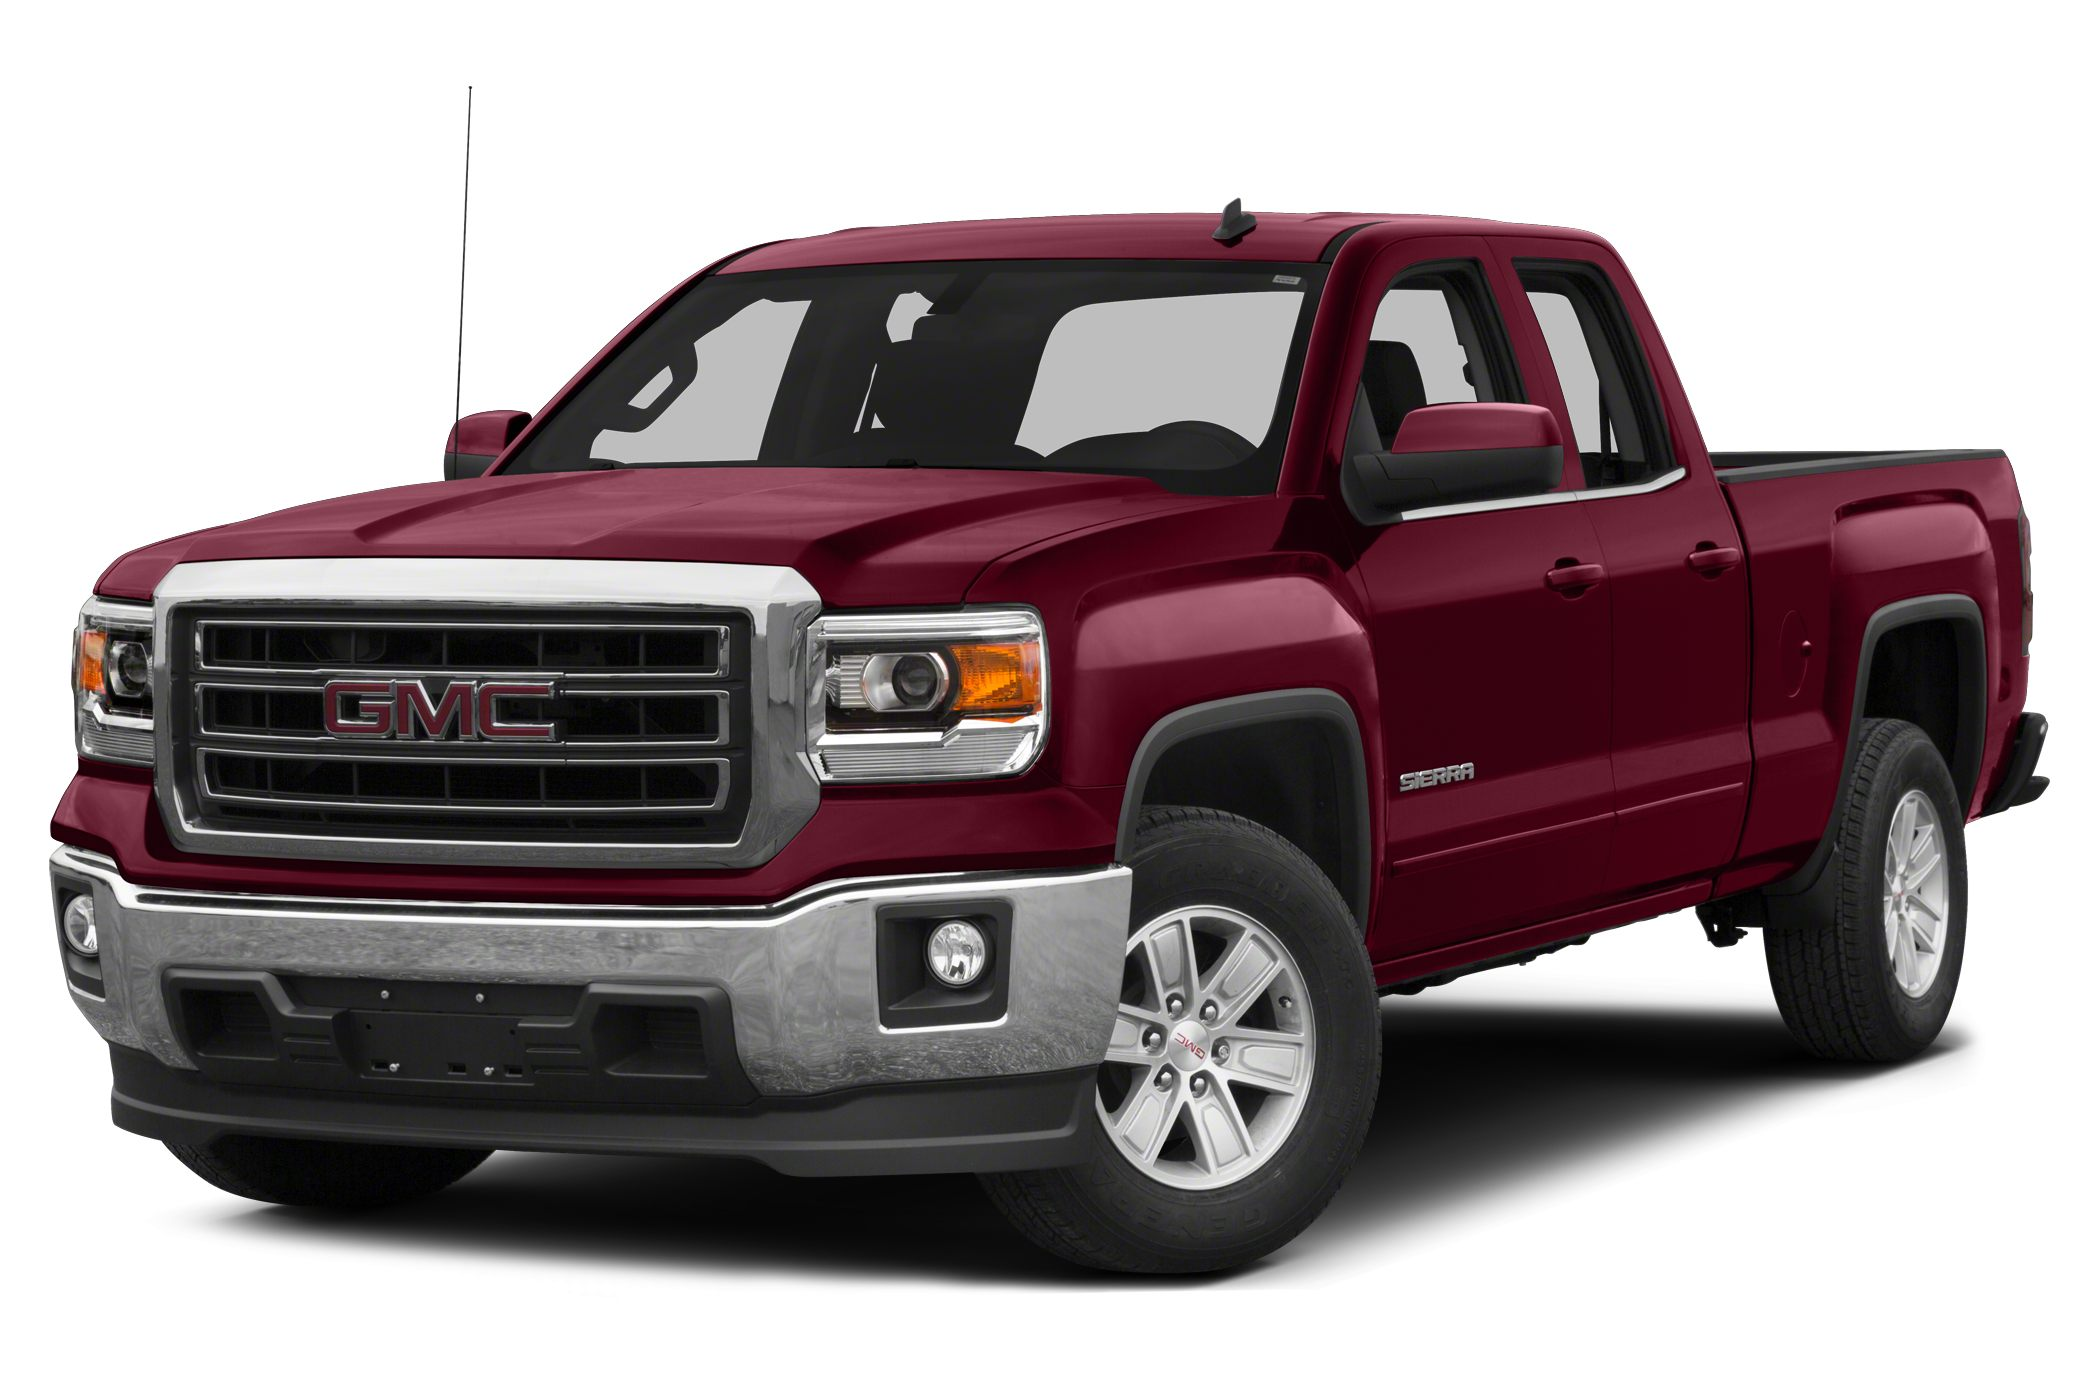 2015 GMC Sierra 1500 SLE Extended Cab Pickup for sale in Lockport for $45,920 with 1 miles.